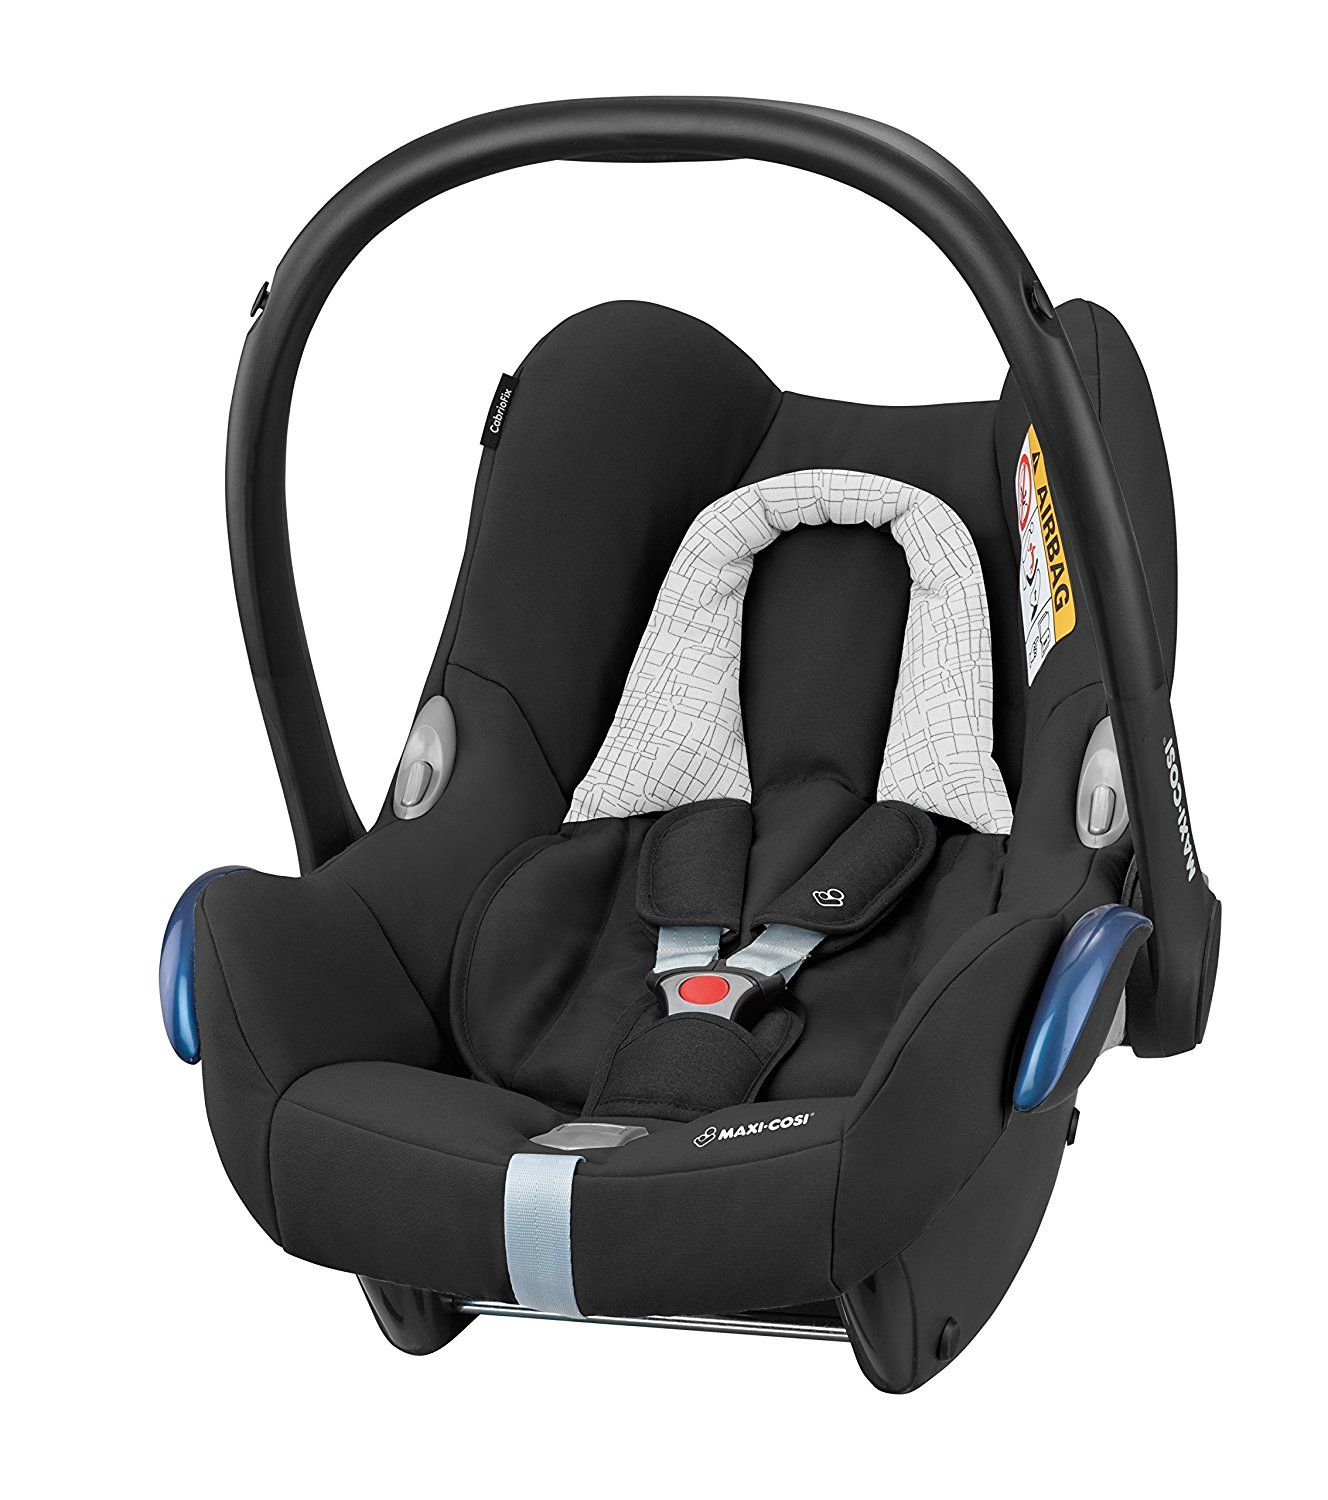 MaxiCosi CabrioFix Group 0+ Car Seat, Black Grid. Group 0